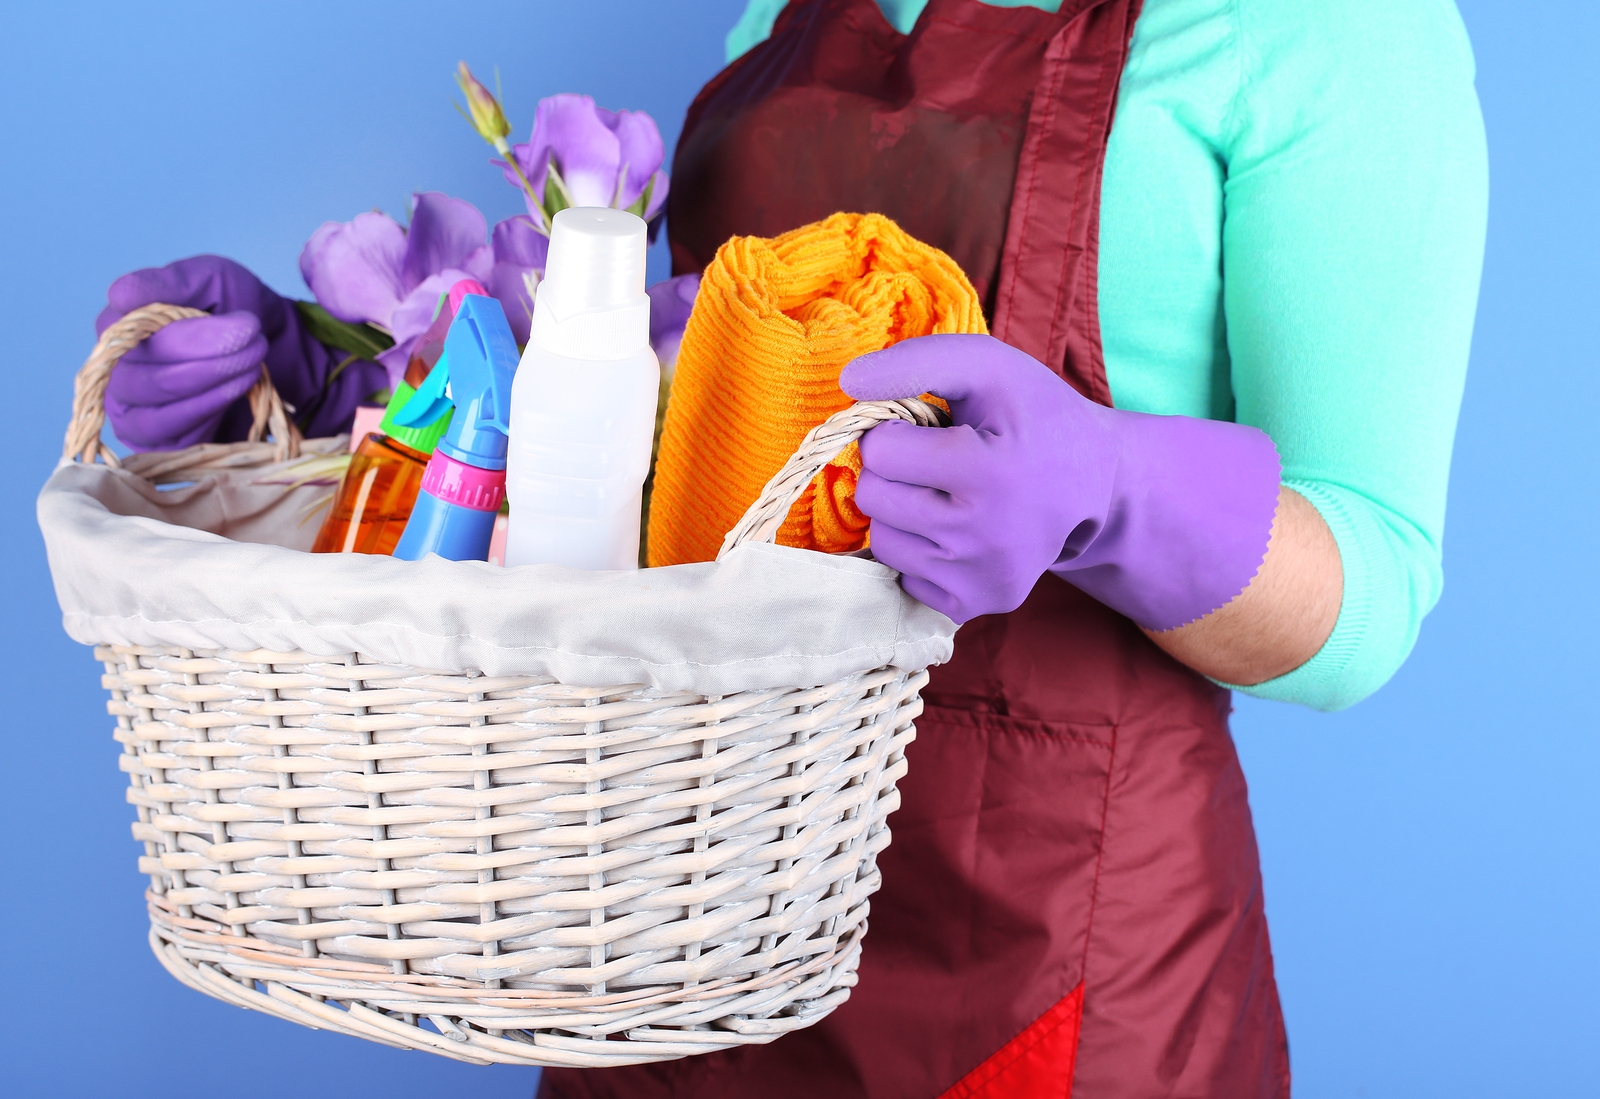 bigstock-Housewife-holding-basket-with-61894304